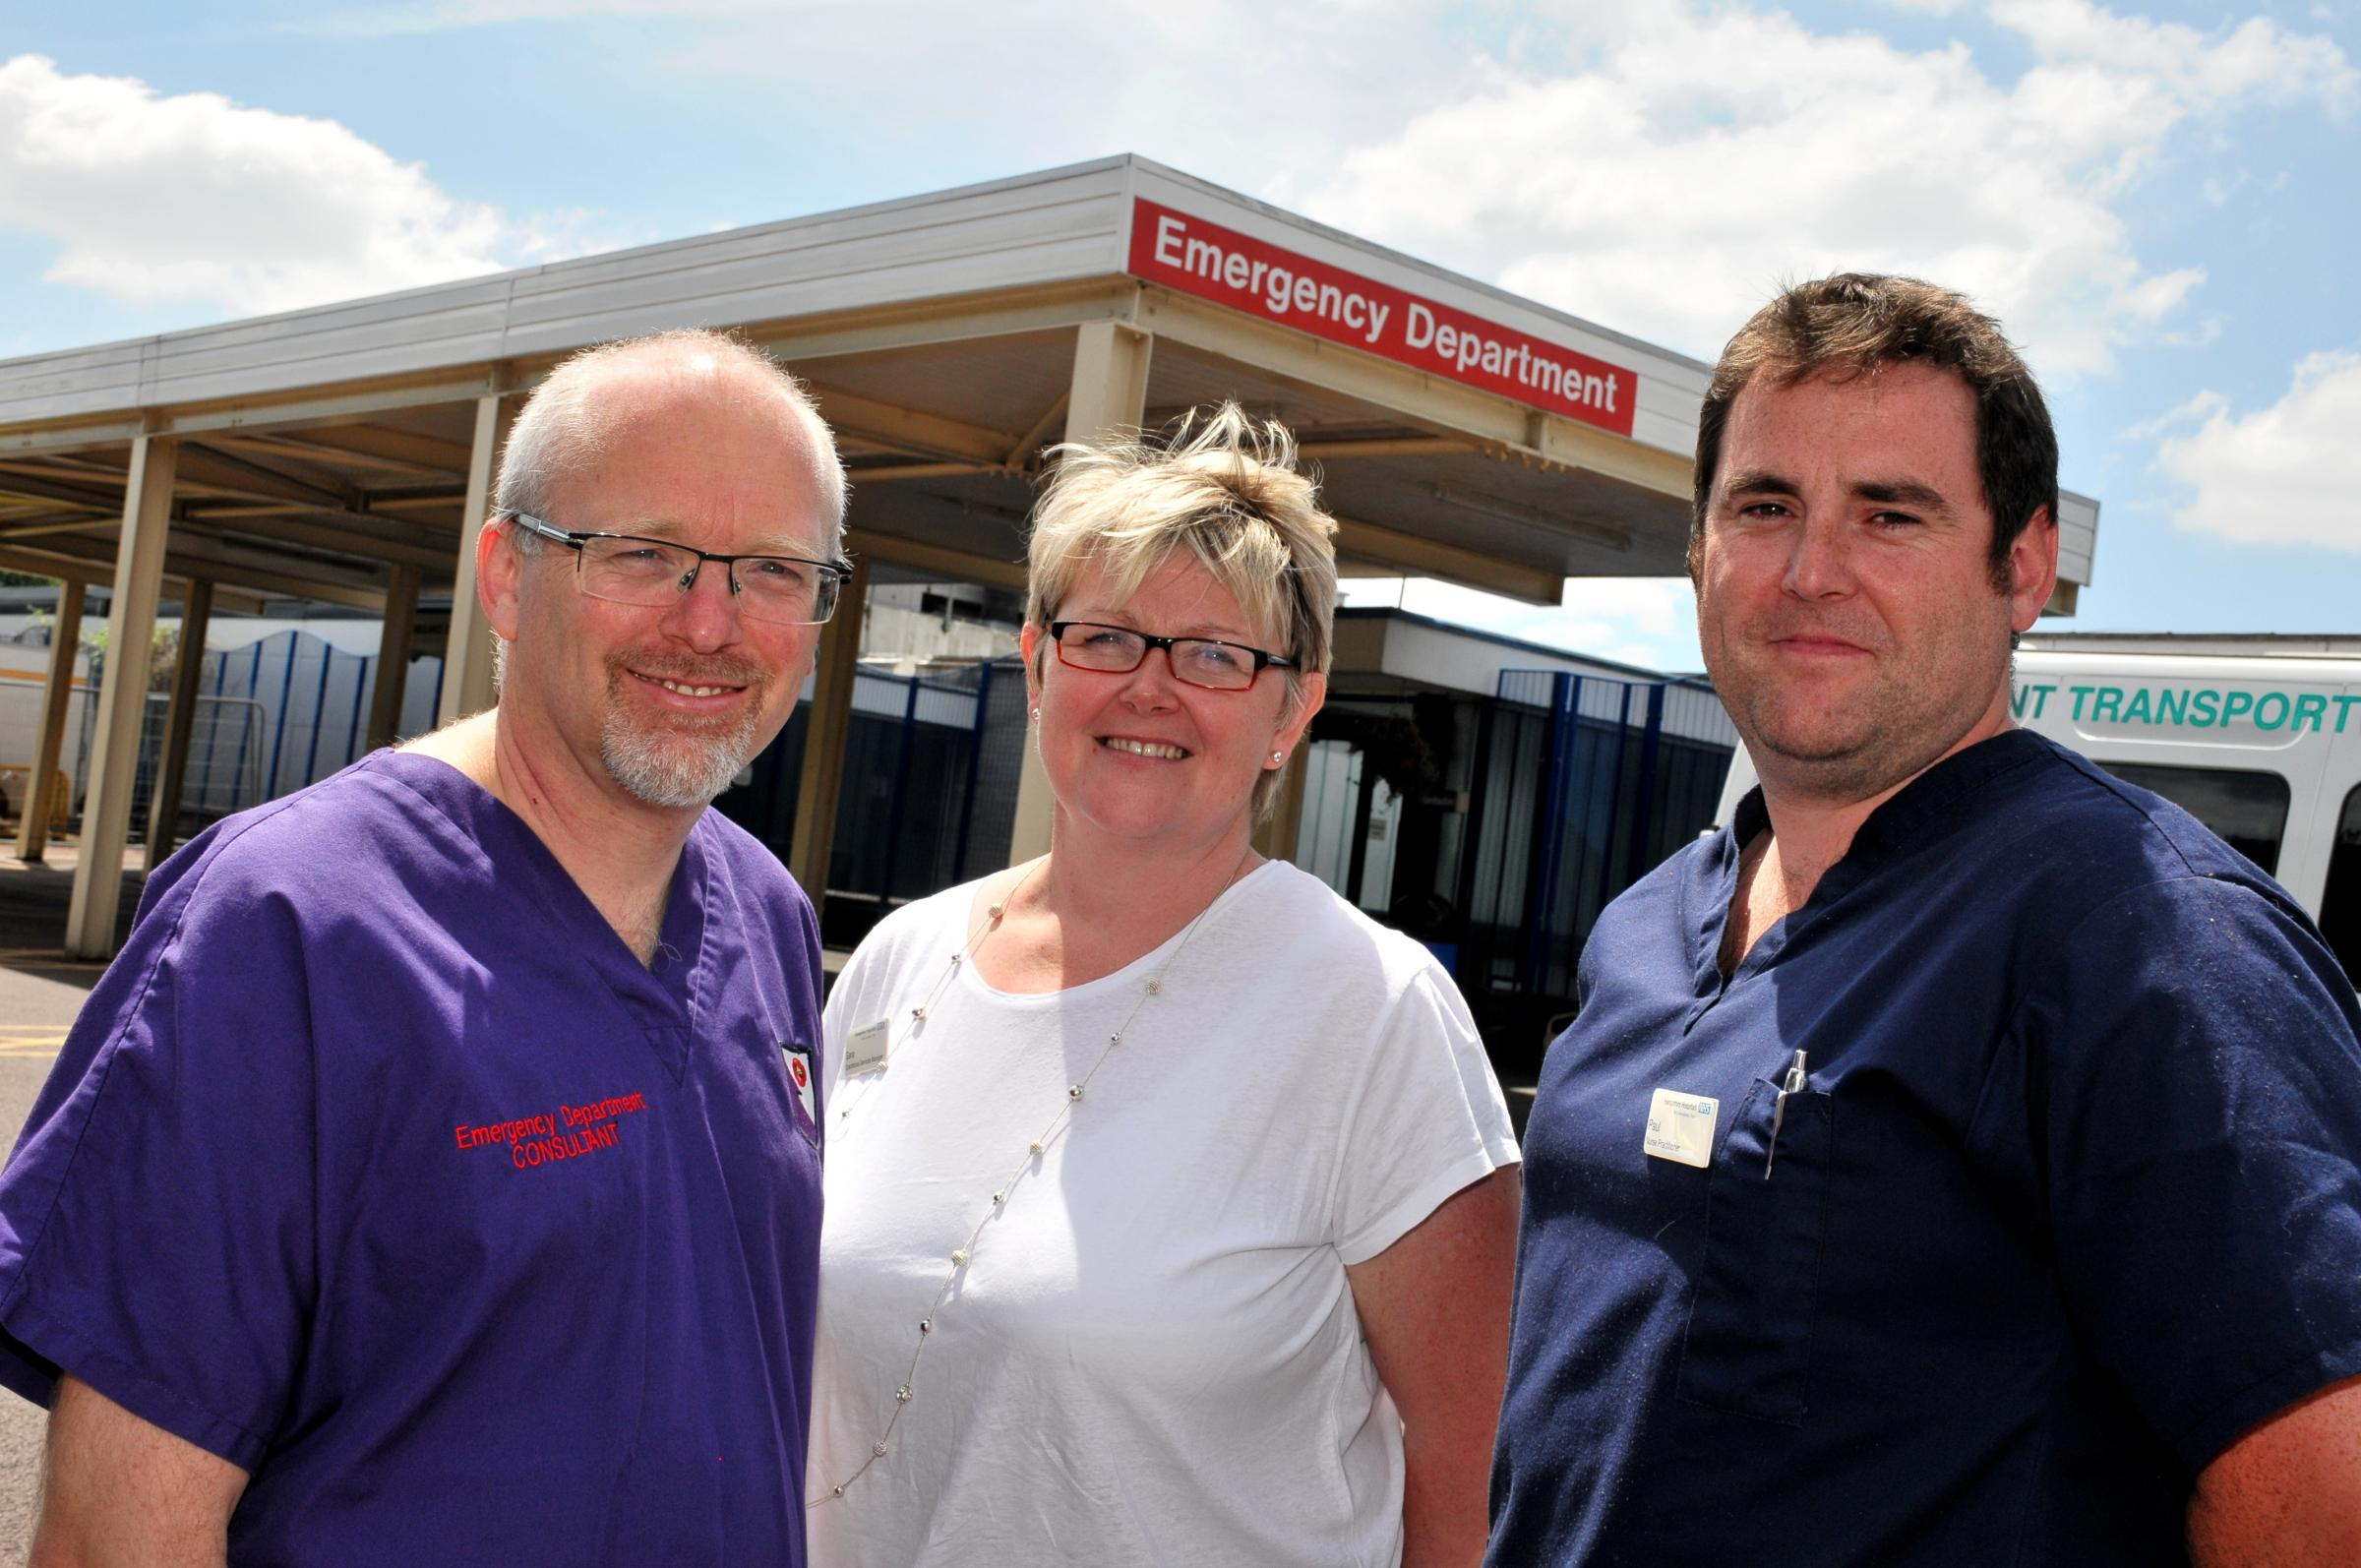 Dr Howard Simpson, clinical director for unscheduled care, Sara Sparks, operational services manager for unscheduled care, and Paul Barton, lead emergency nurse practitioner